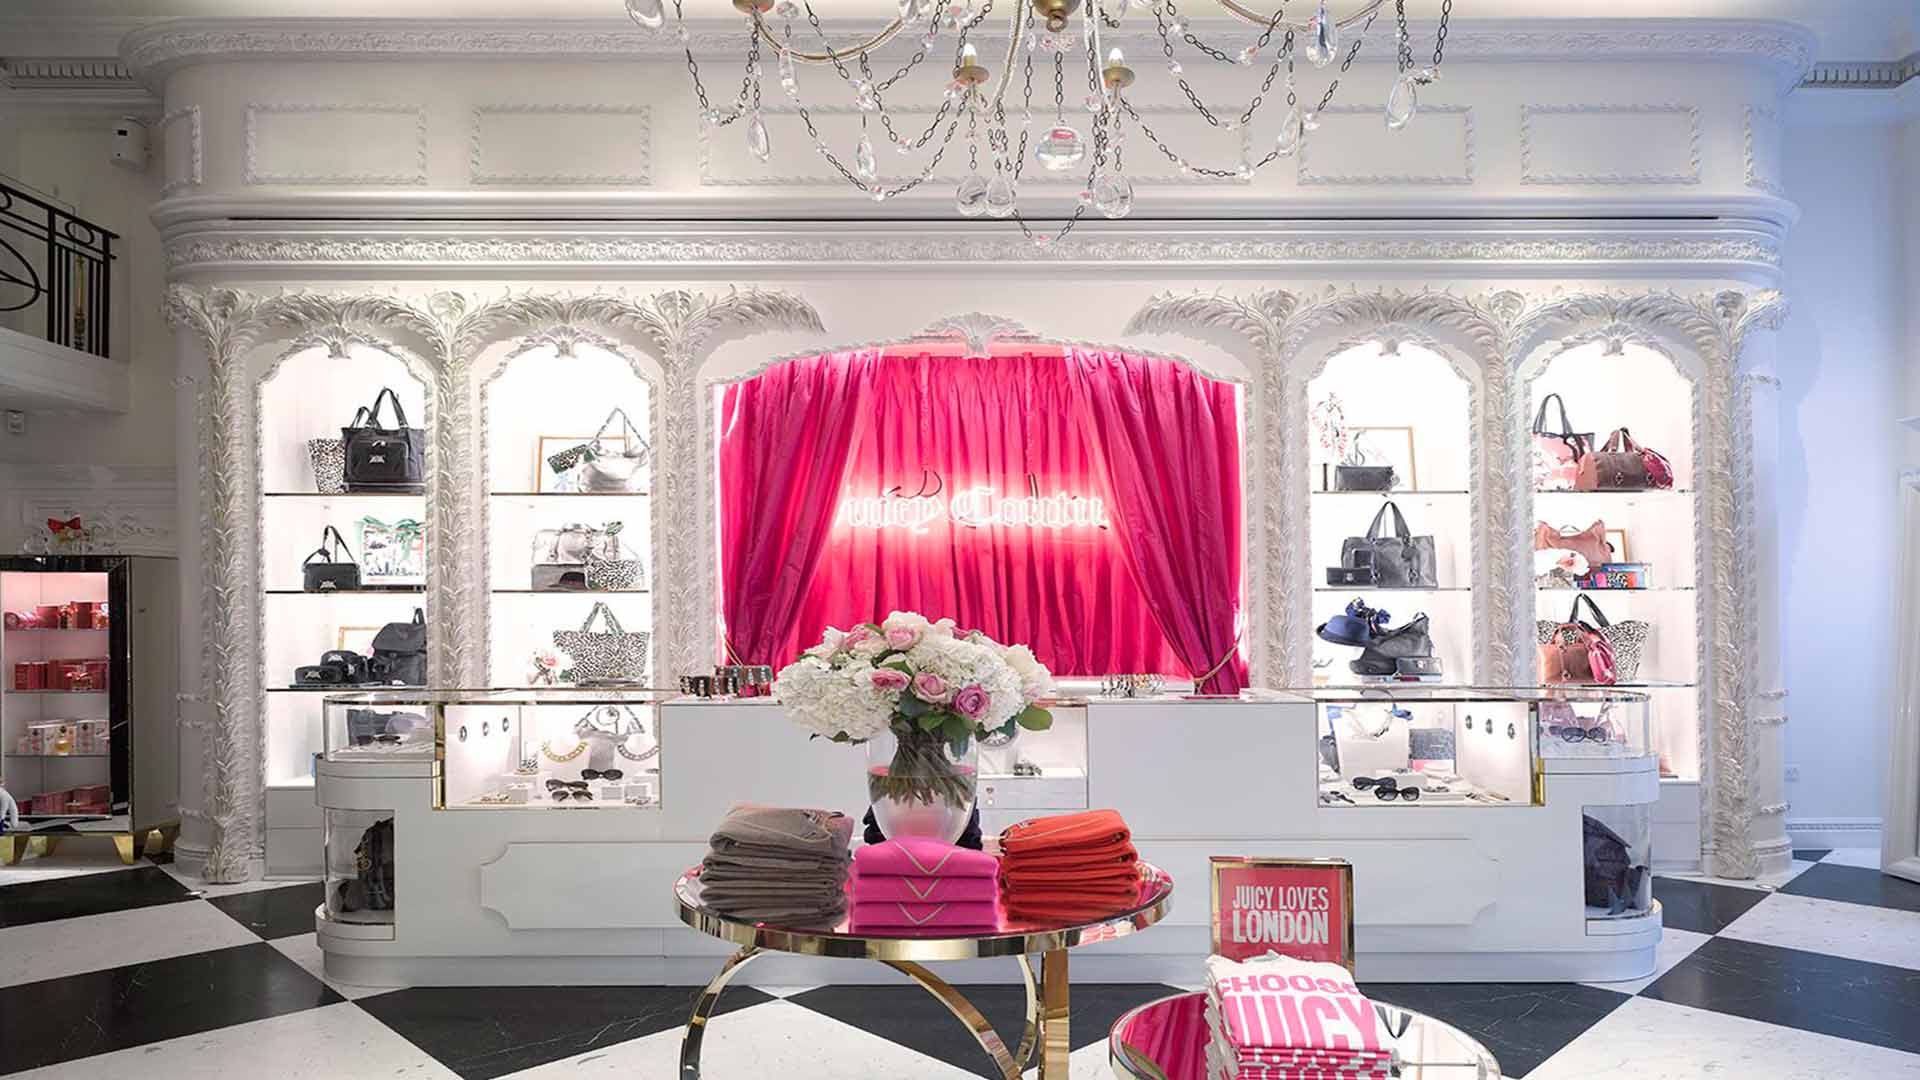 Lighting Design Luxury Shop Counter Pink Taffeta Curtain Neon Sign Product Shelving Nulty